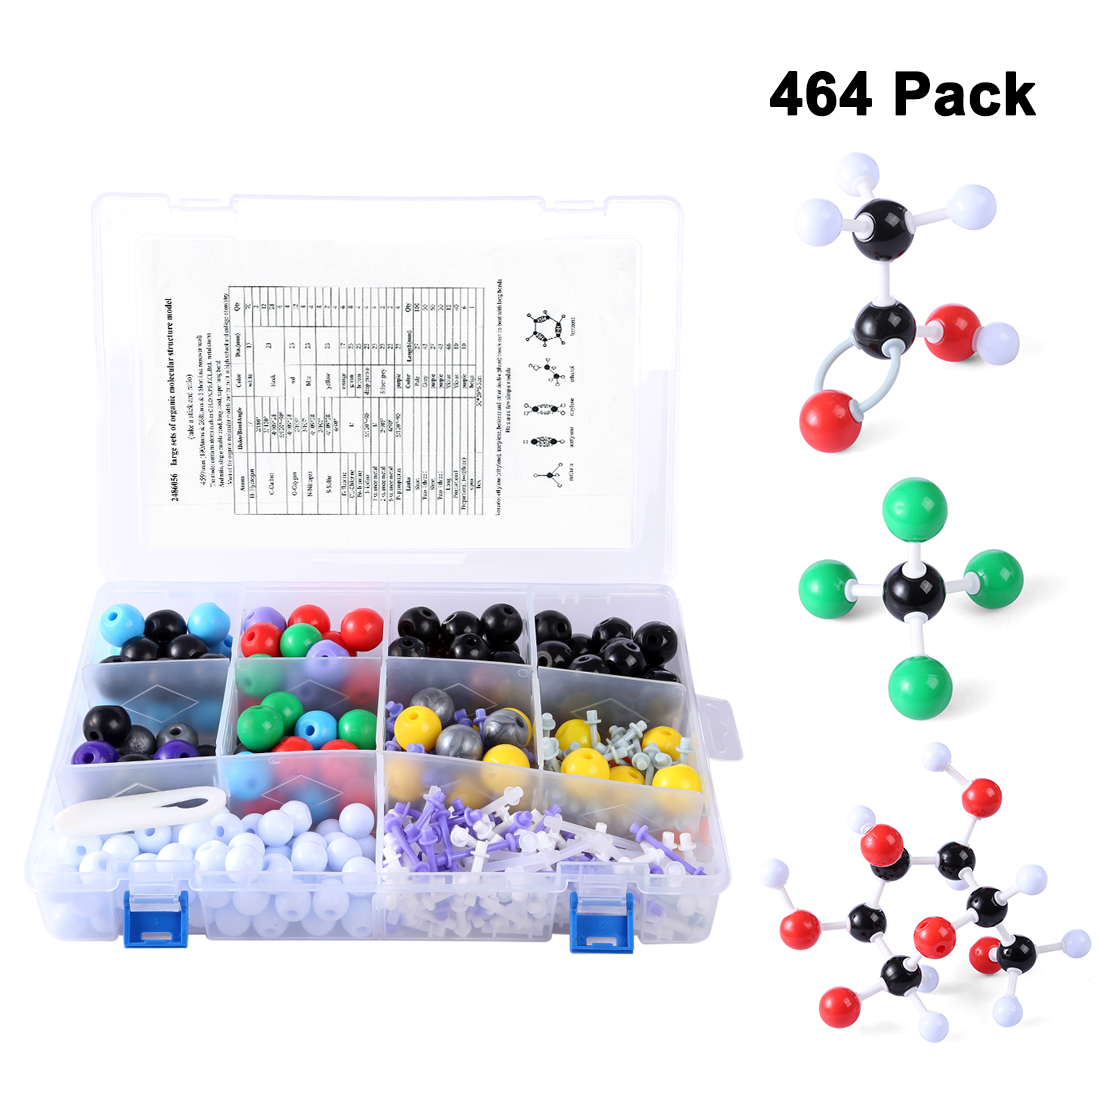 464Pcs Class Teaching Organic Inorganic Molecule Chemical Structure Model Set for Kids Students Learning Educational Science Toy цена